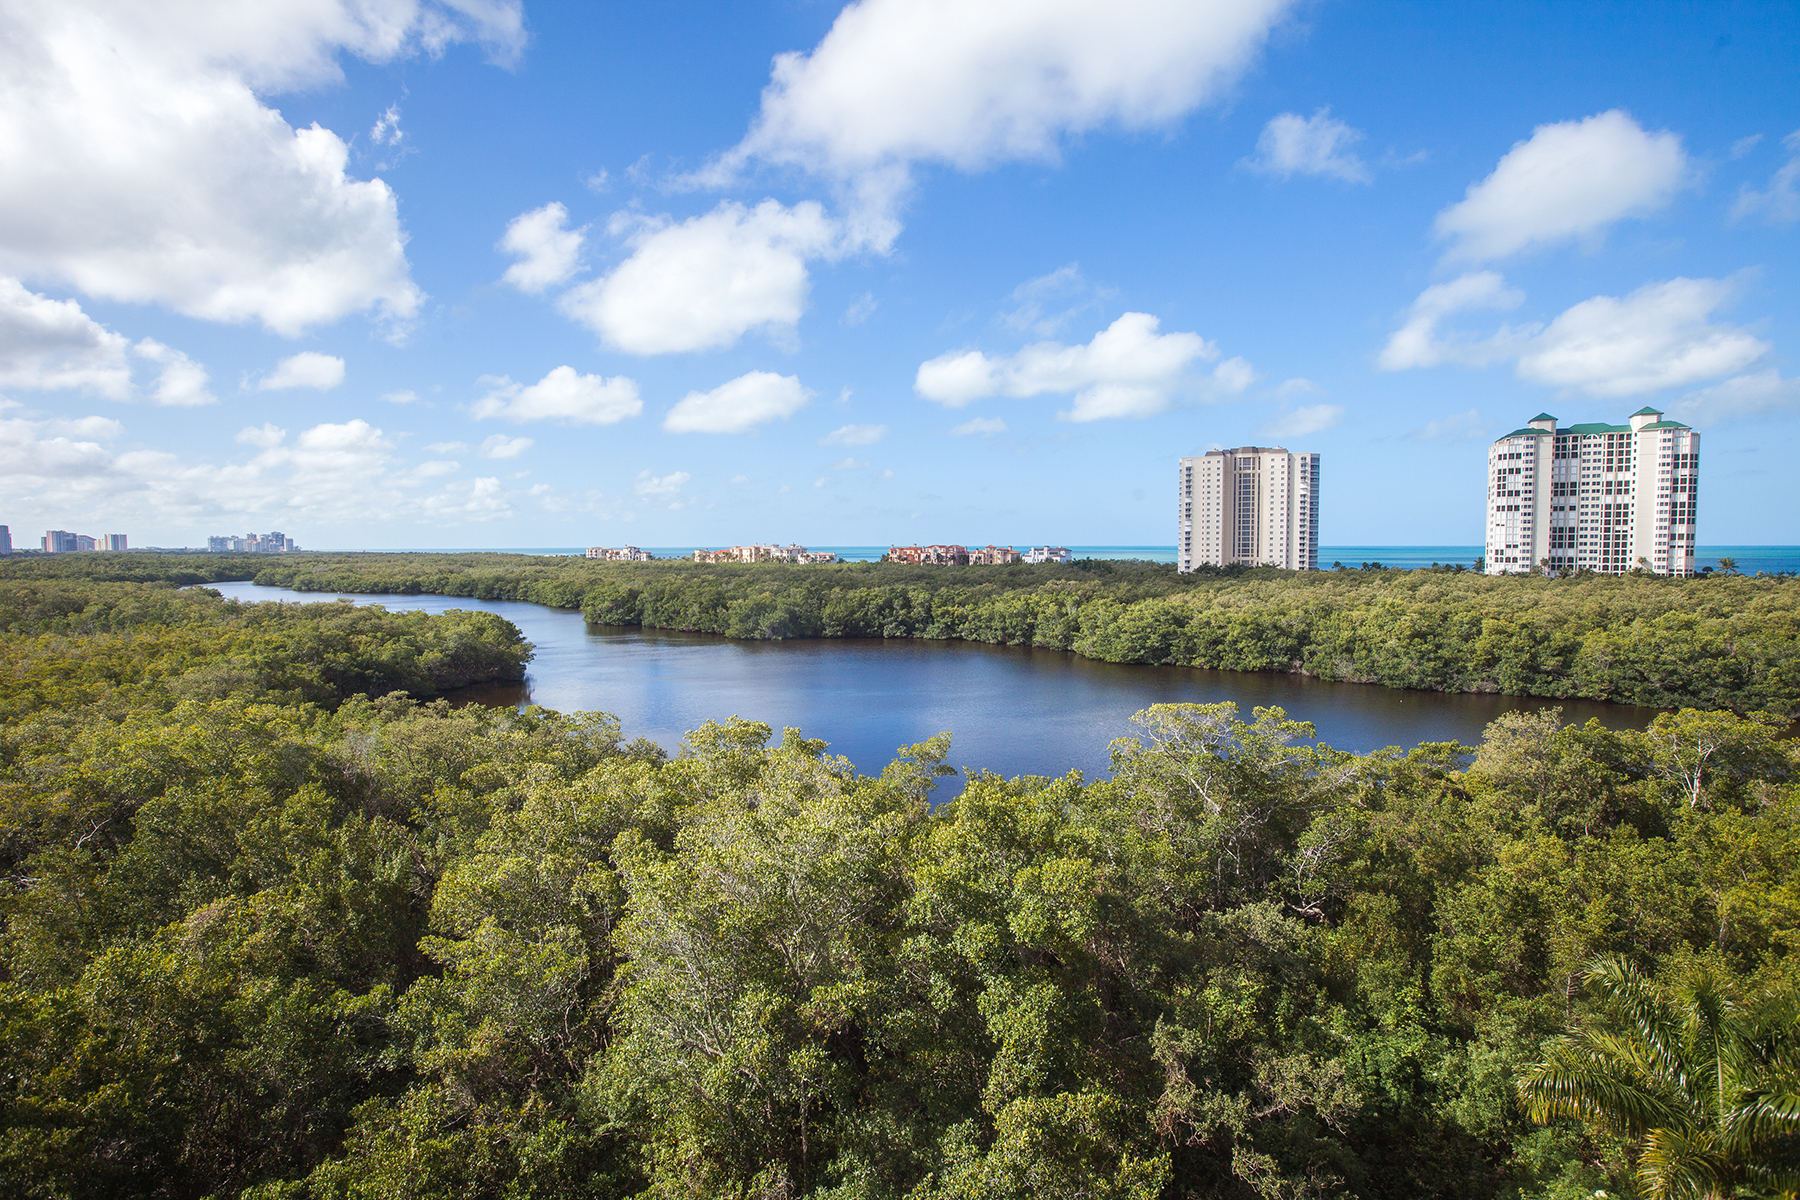 Condominium for Sale at MARQUESA AT BAY COLONY 8990 Bay Colony Dr 601, Naples, Florida 34108 United States